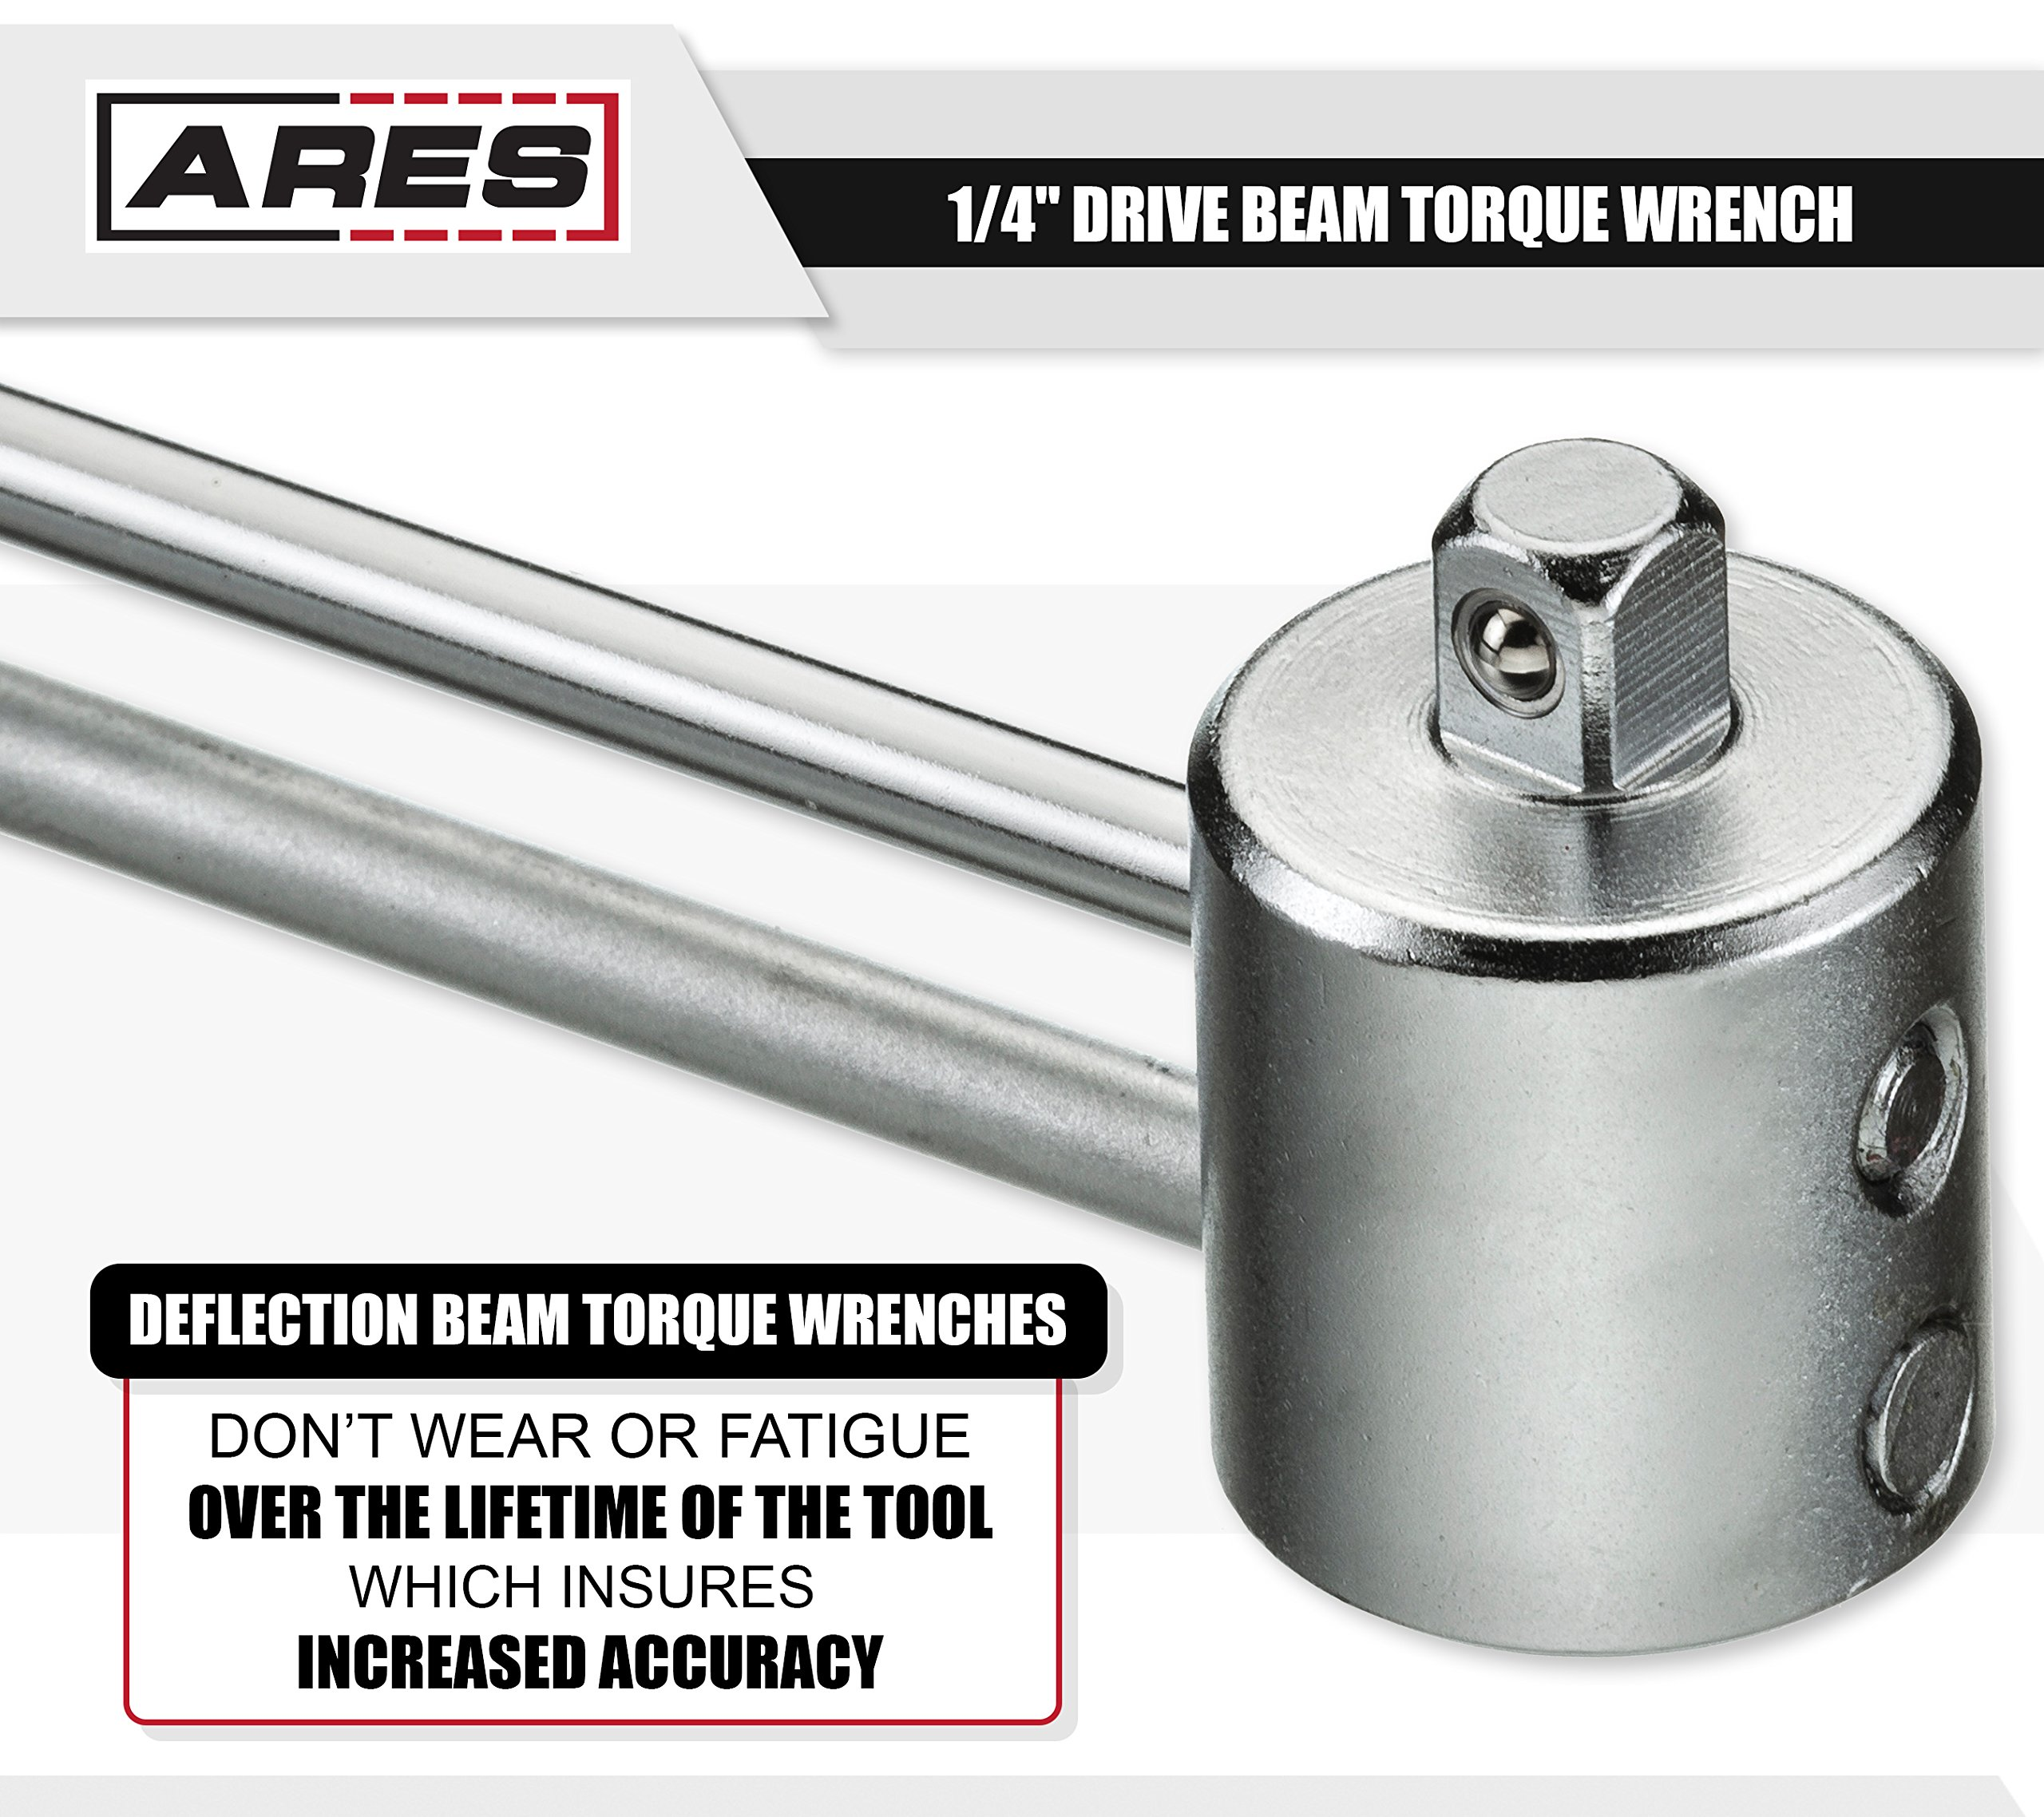 ARES 70213 | 1/4-inch Drive Beam Torque Wrench | 0-80 in/lb and 0-9 Newton Meter Torque Wrench | High Visibility Markings for Easy Readings by ARES (Image #4)